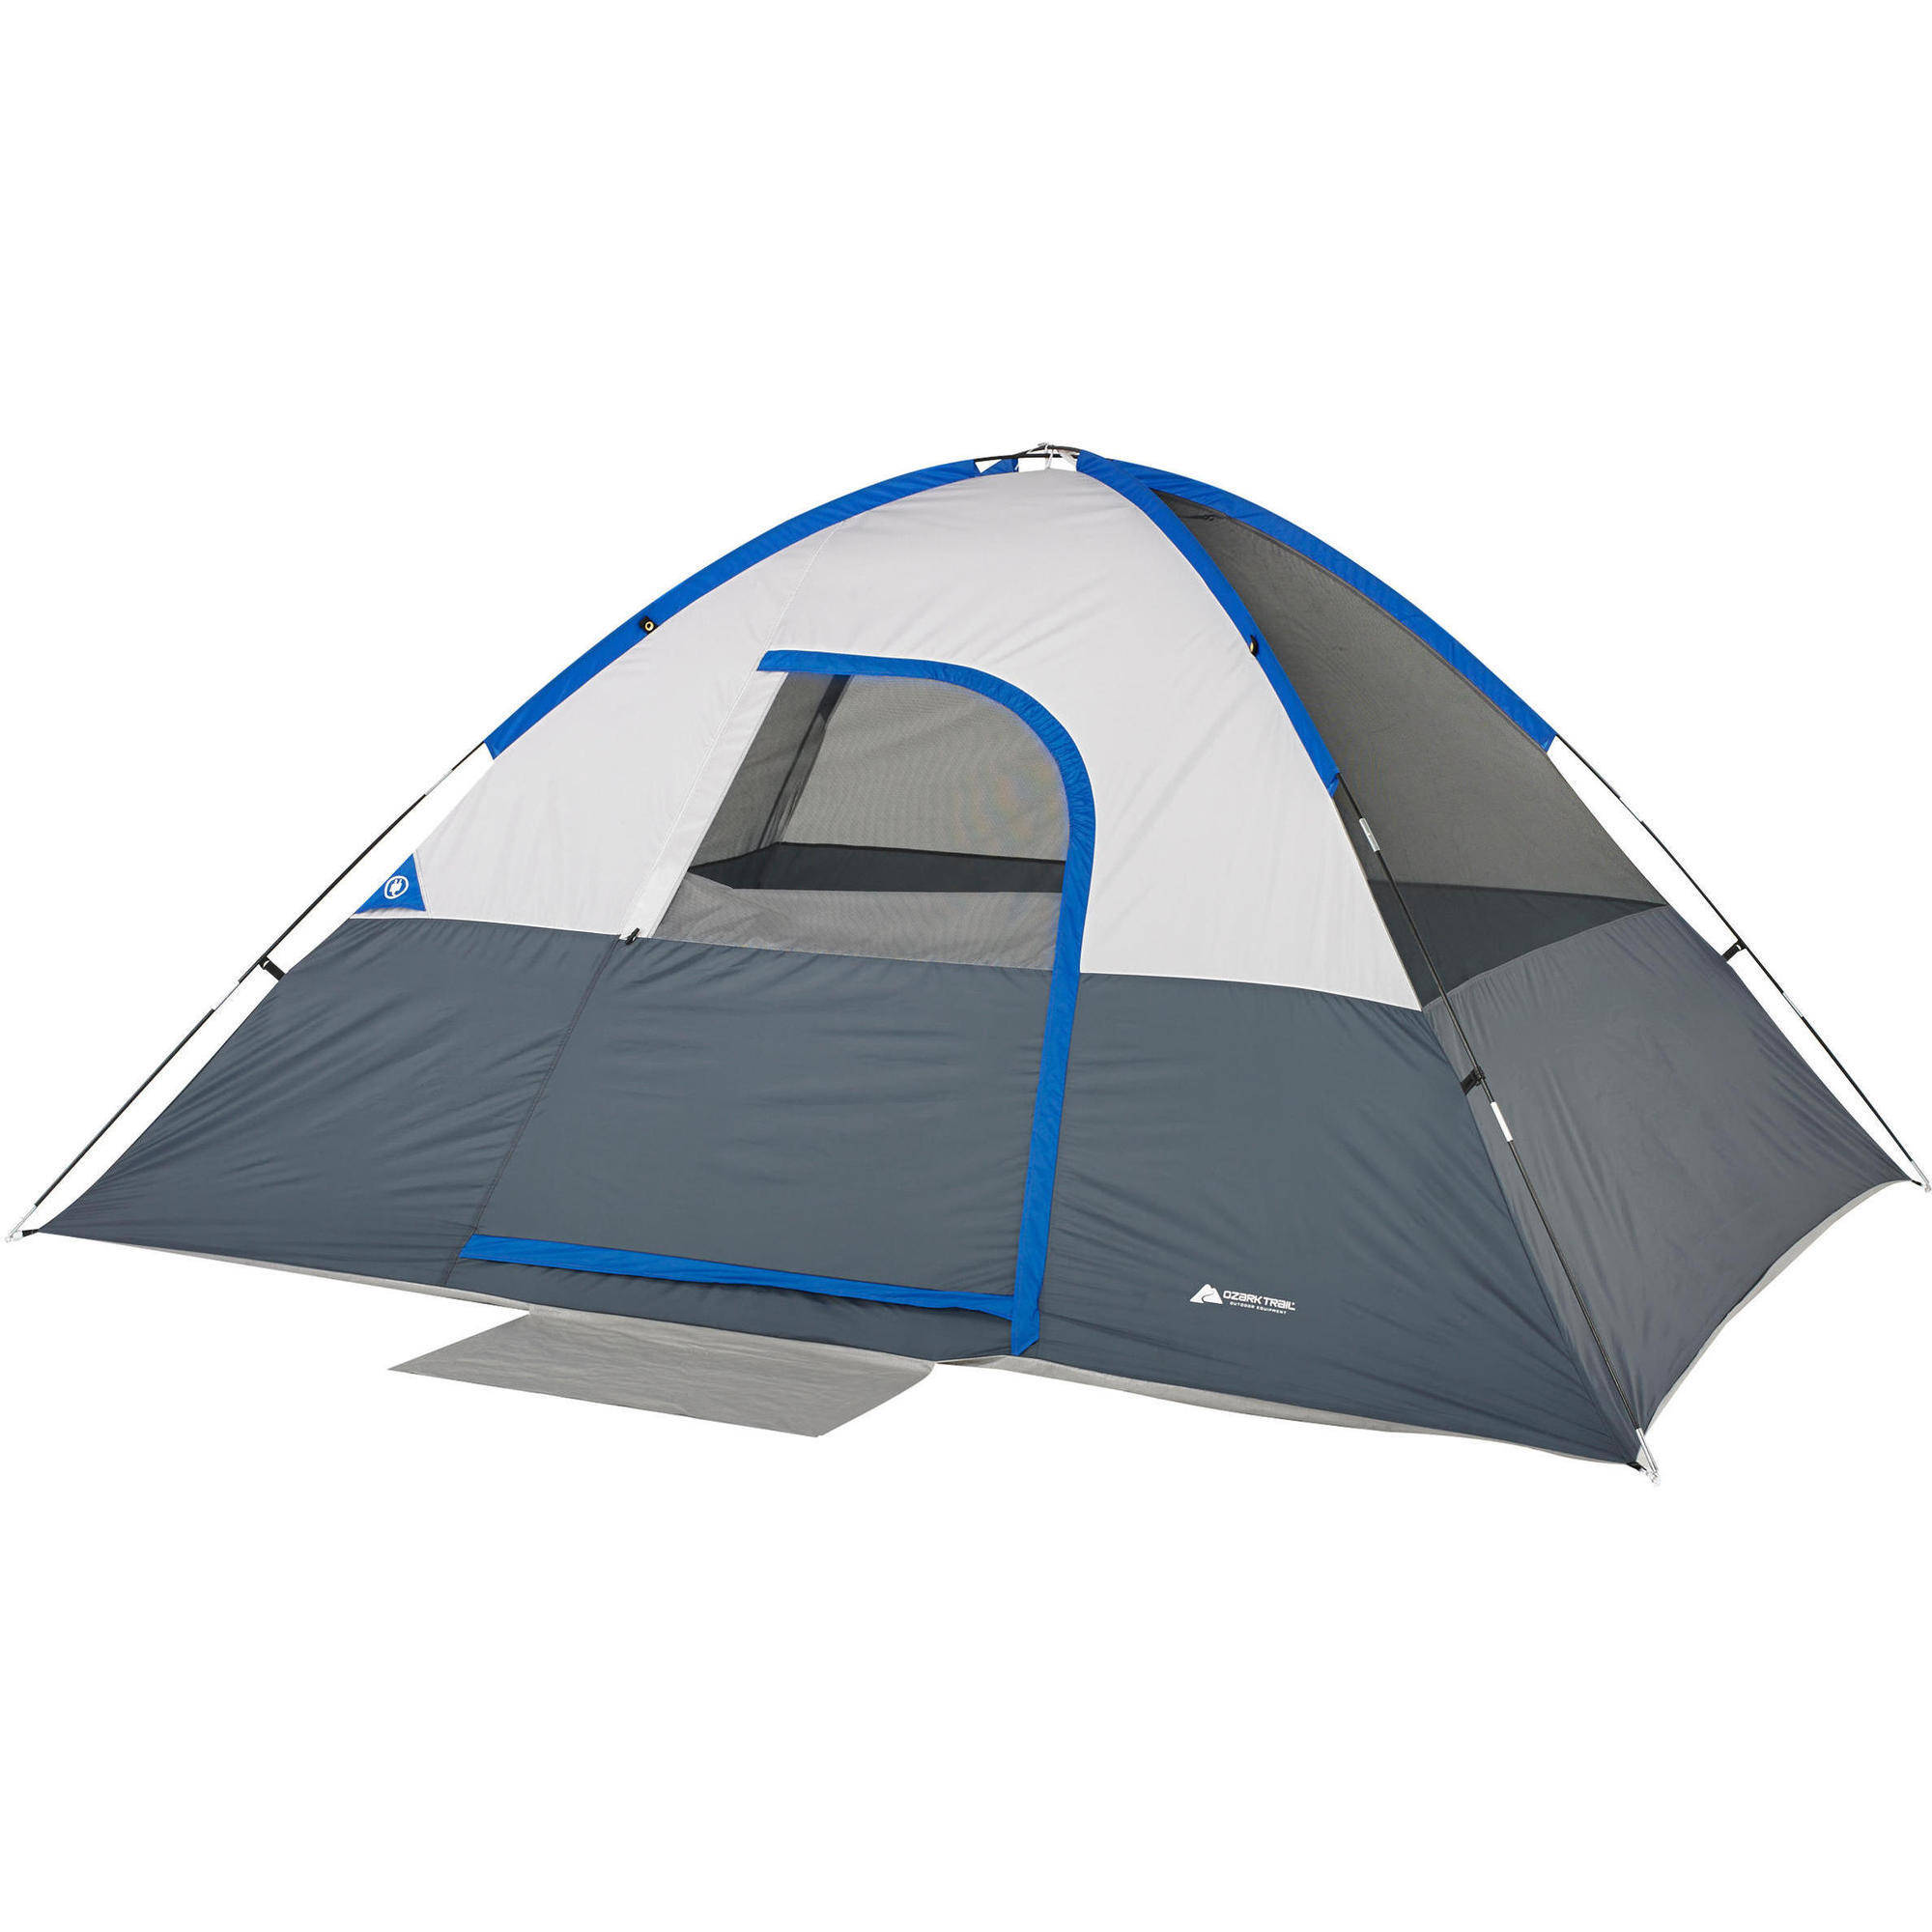 sc 1 st  Walmart & Ozark Trail 5-Person Dome Tent with Integrated E-Port - Walmart.com